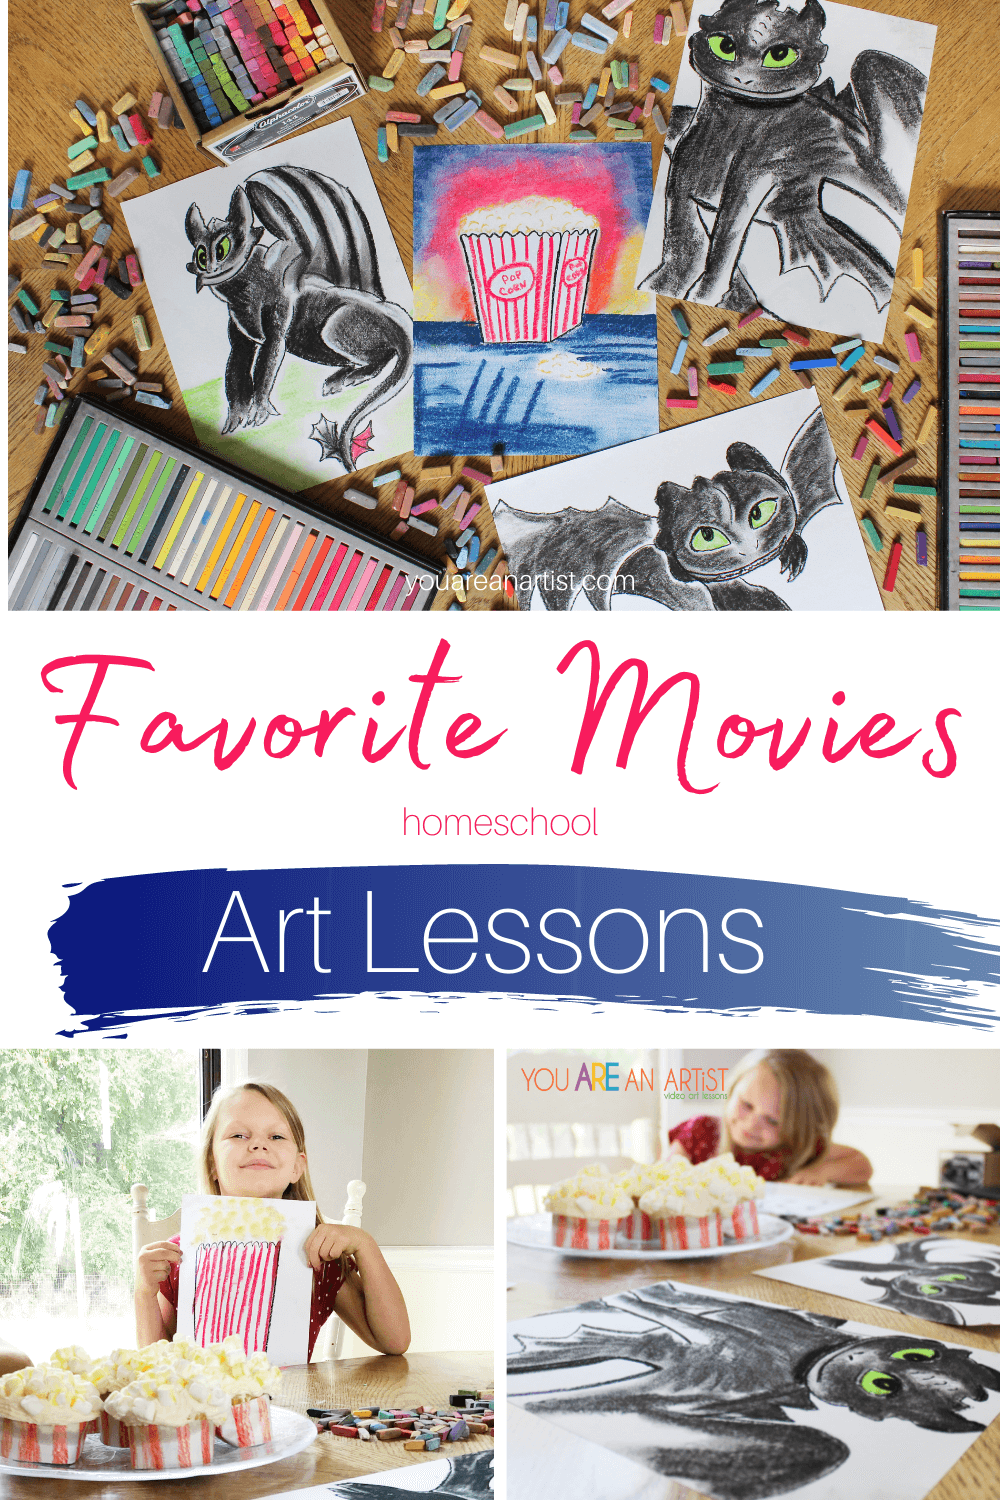 Favorite Movies Homeschool Art Lessons: Don't let family movie night become boring! Bring some excitement back with these chalk pastel art lessons. All you'll need is a pack of construction paper and a set of chalk pastels. So grab your favorite movie snacks or make some of your own and join Nana for some of your family's favorite movies. #familymovienight #chalkpastelartlessons #familymovienightartlessons #familymovieartlessons #favoritemovieshomeschoolartlessons #chalkpastelmovieartlesson #chalkpastelsatthemovies #artatthemovies